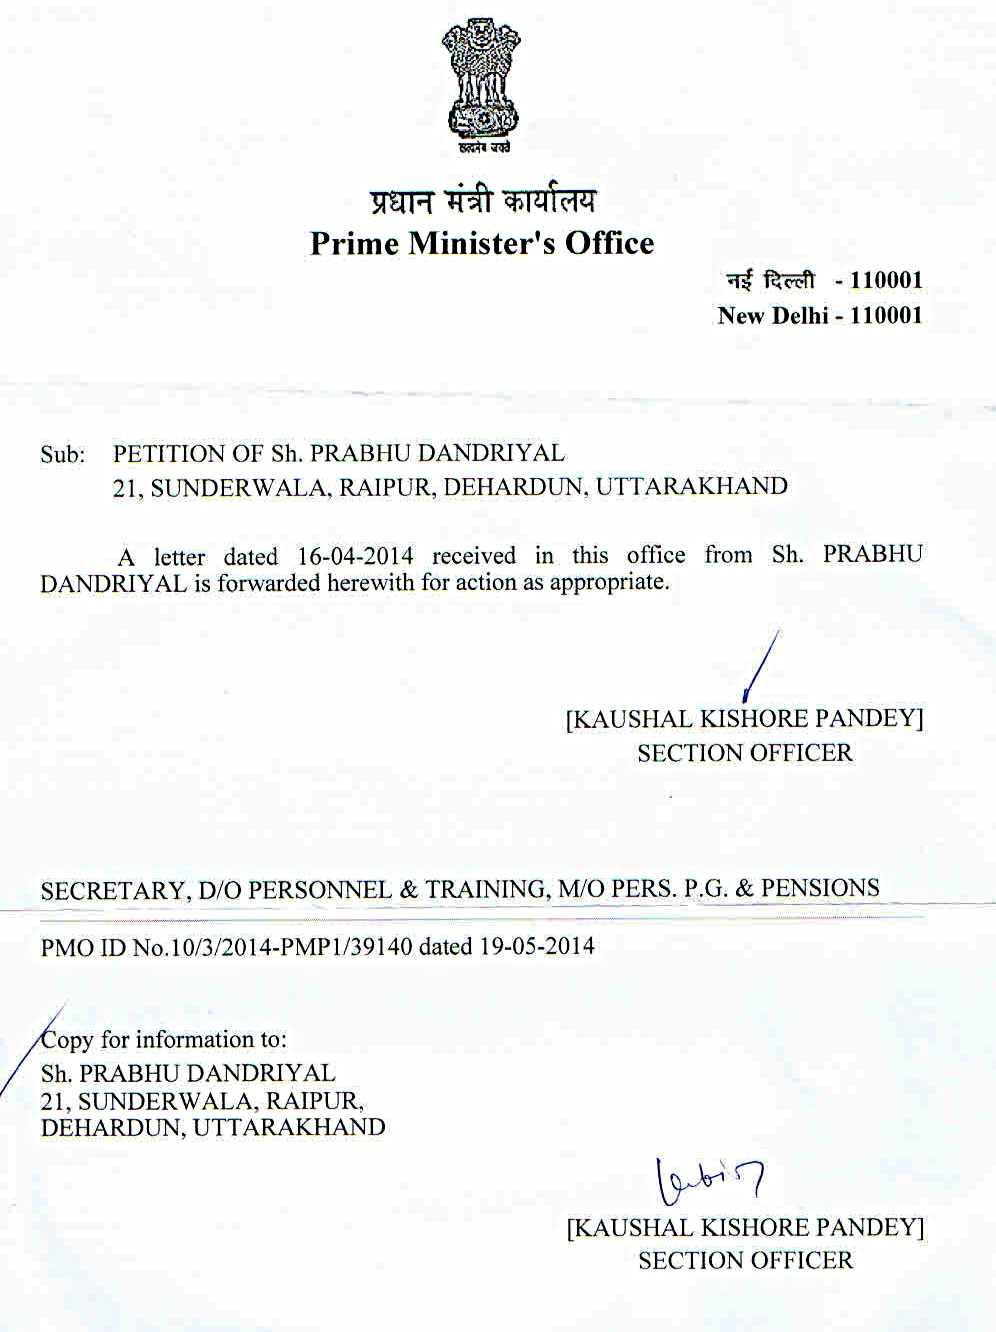 PMO reply 19 may 2014